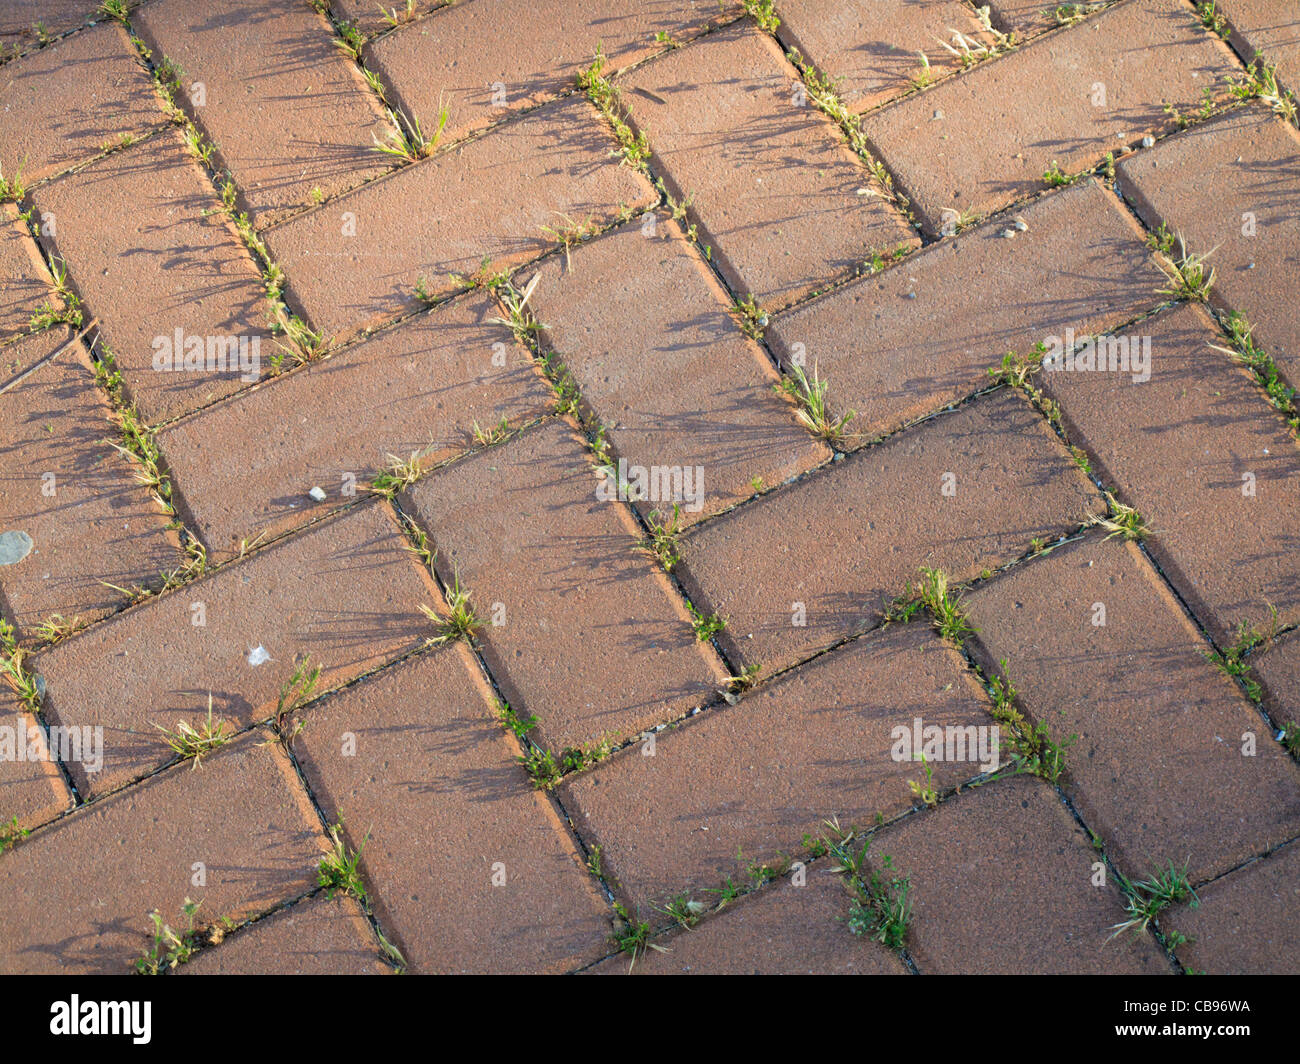 Block-paved road, Italy. - Stock Image